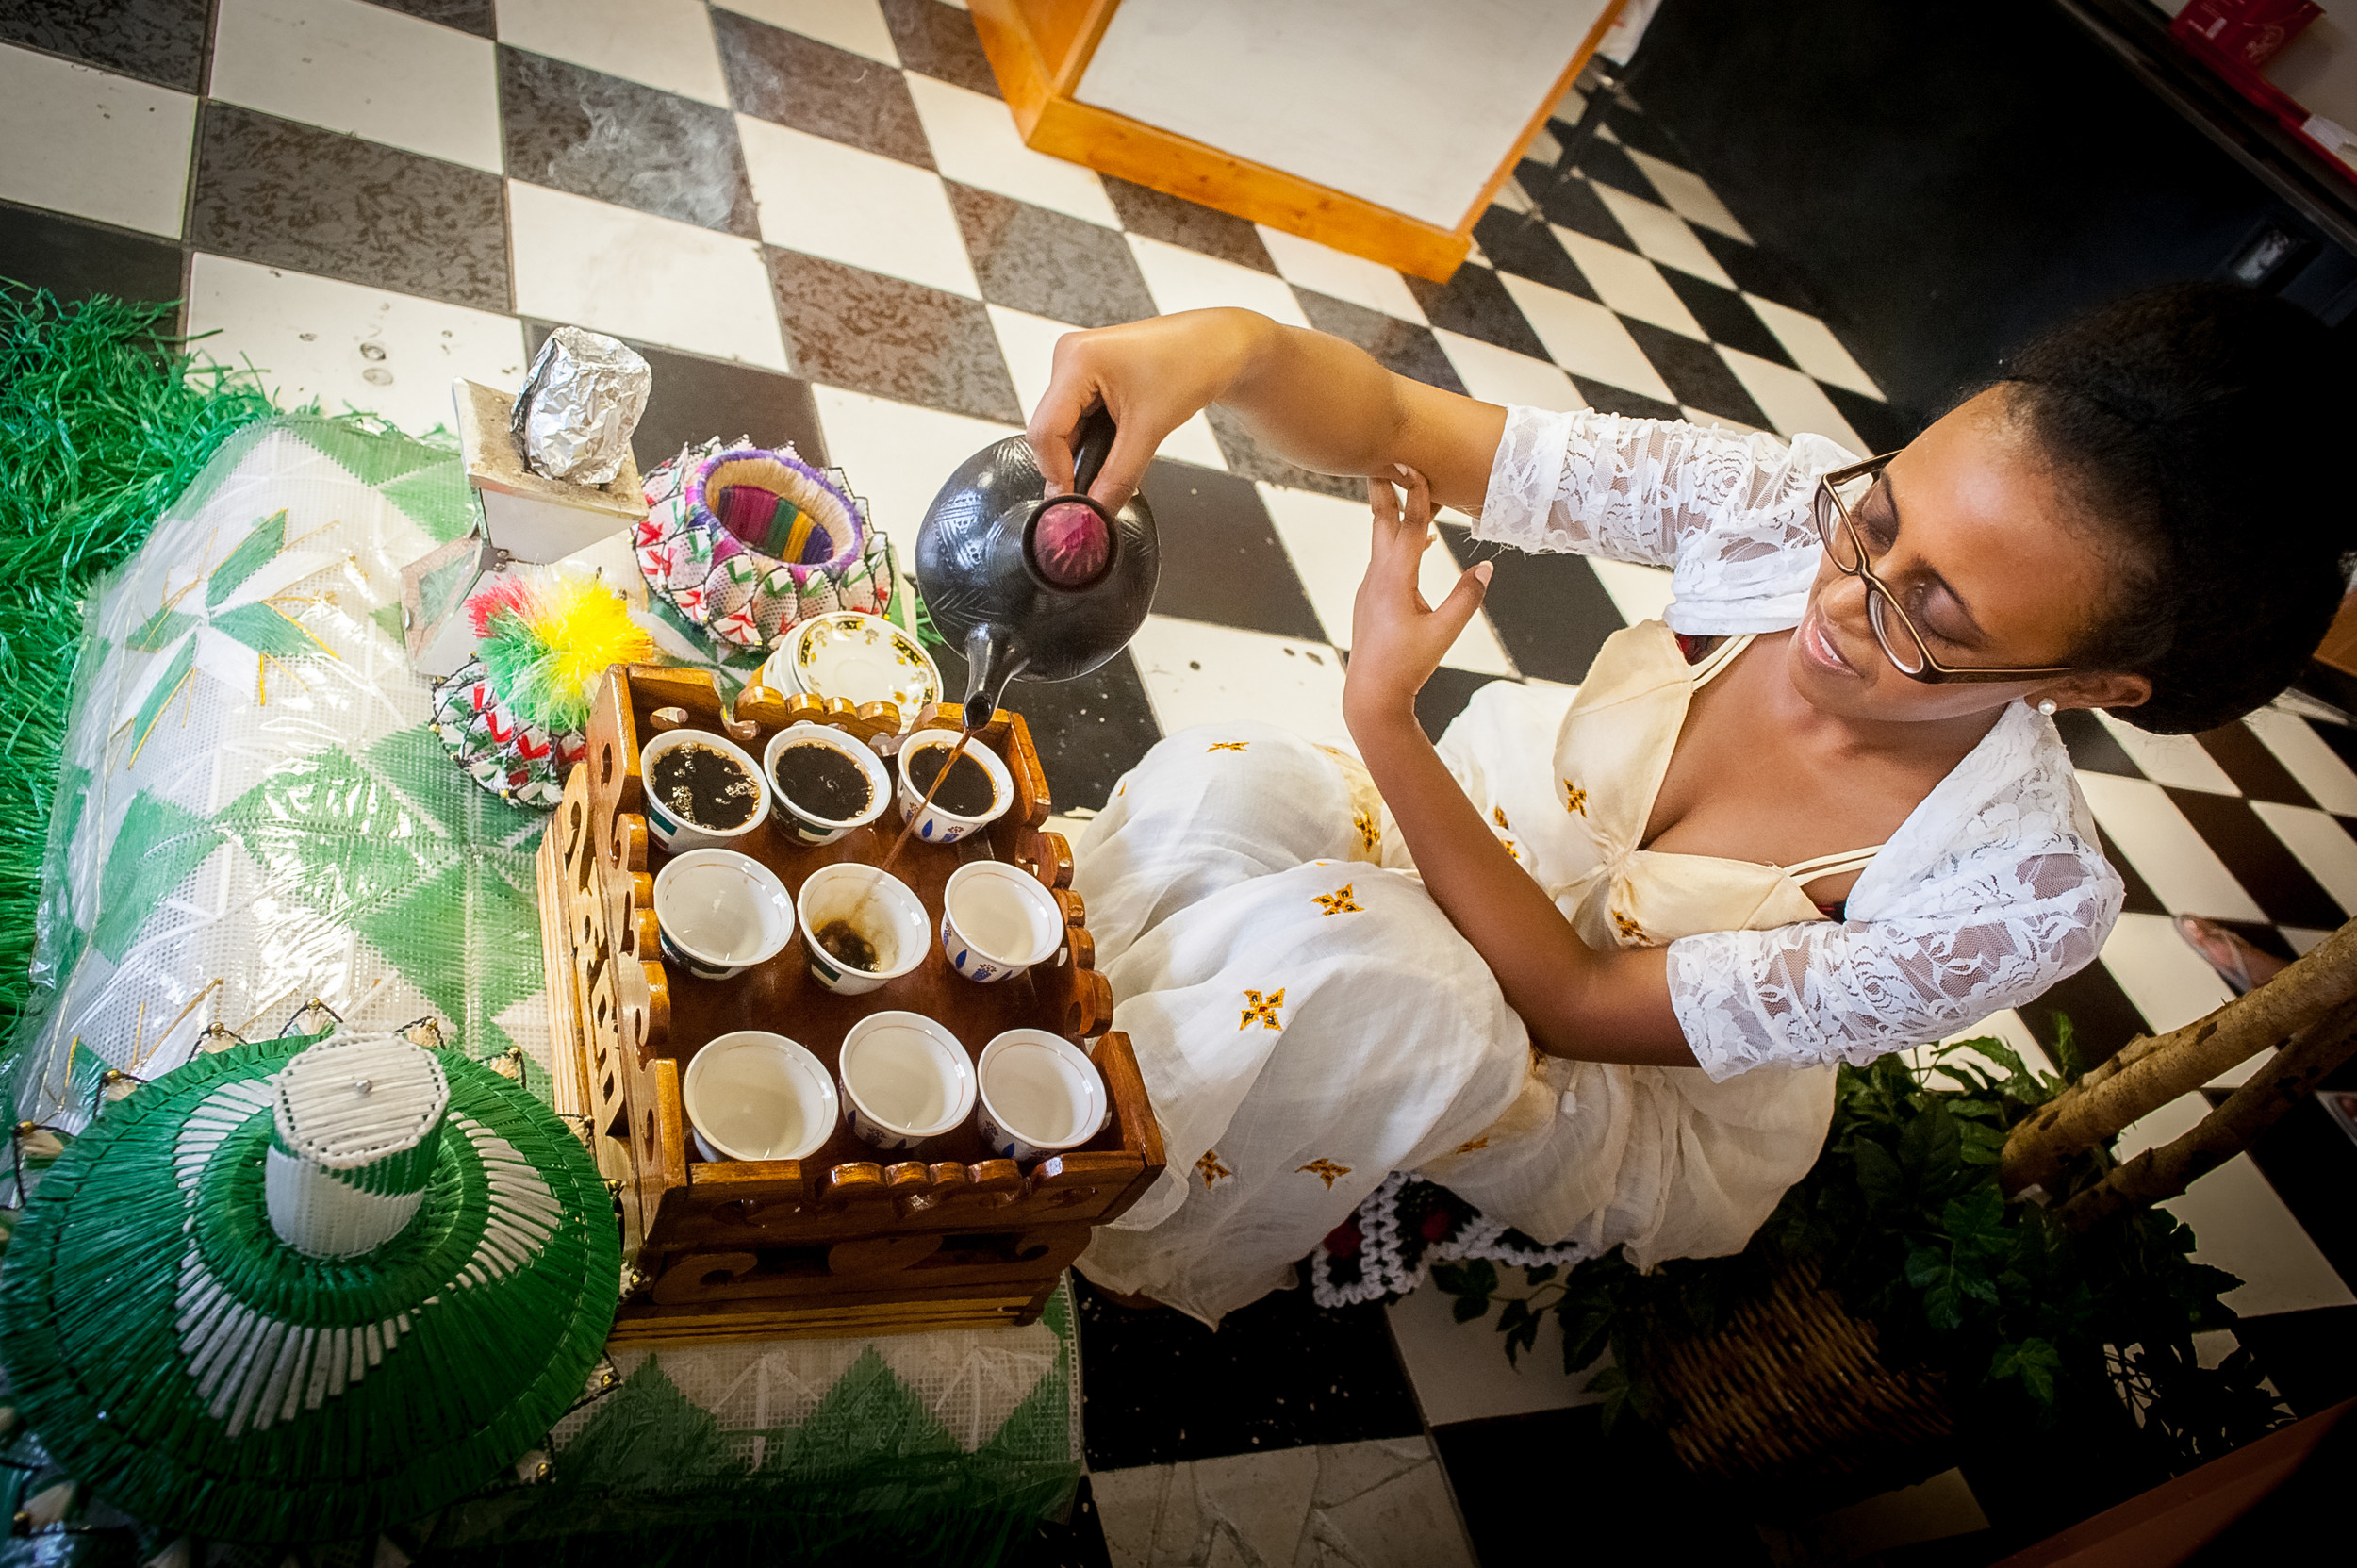 During the ritual coffee ceremony, Hiwot Mideksa pours everyone a cup, bringing out sugar, salt and accompanying snacks such as a bowl of popcorn. Photos: Fran Ruchalski